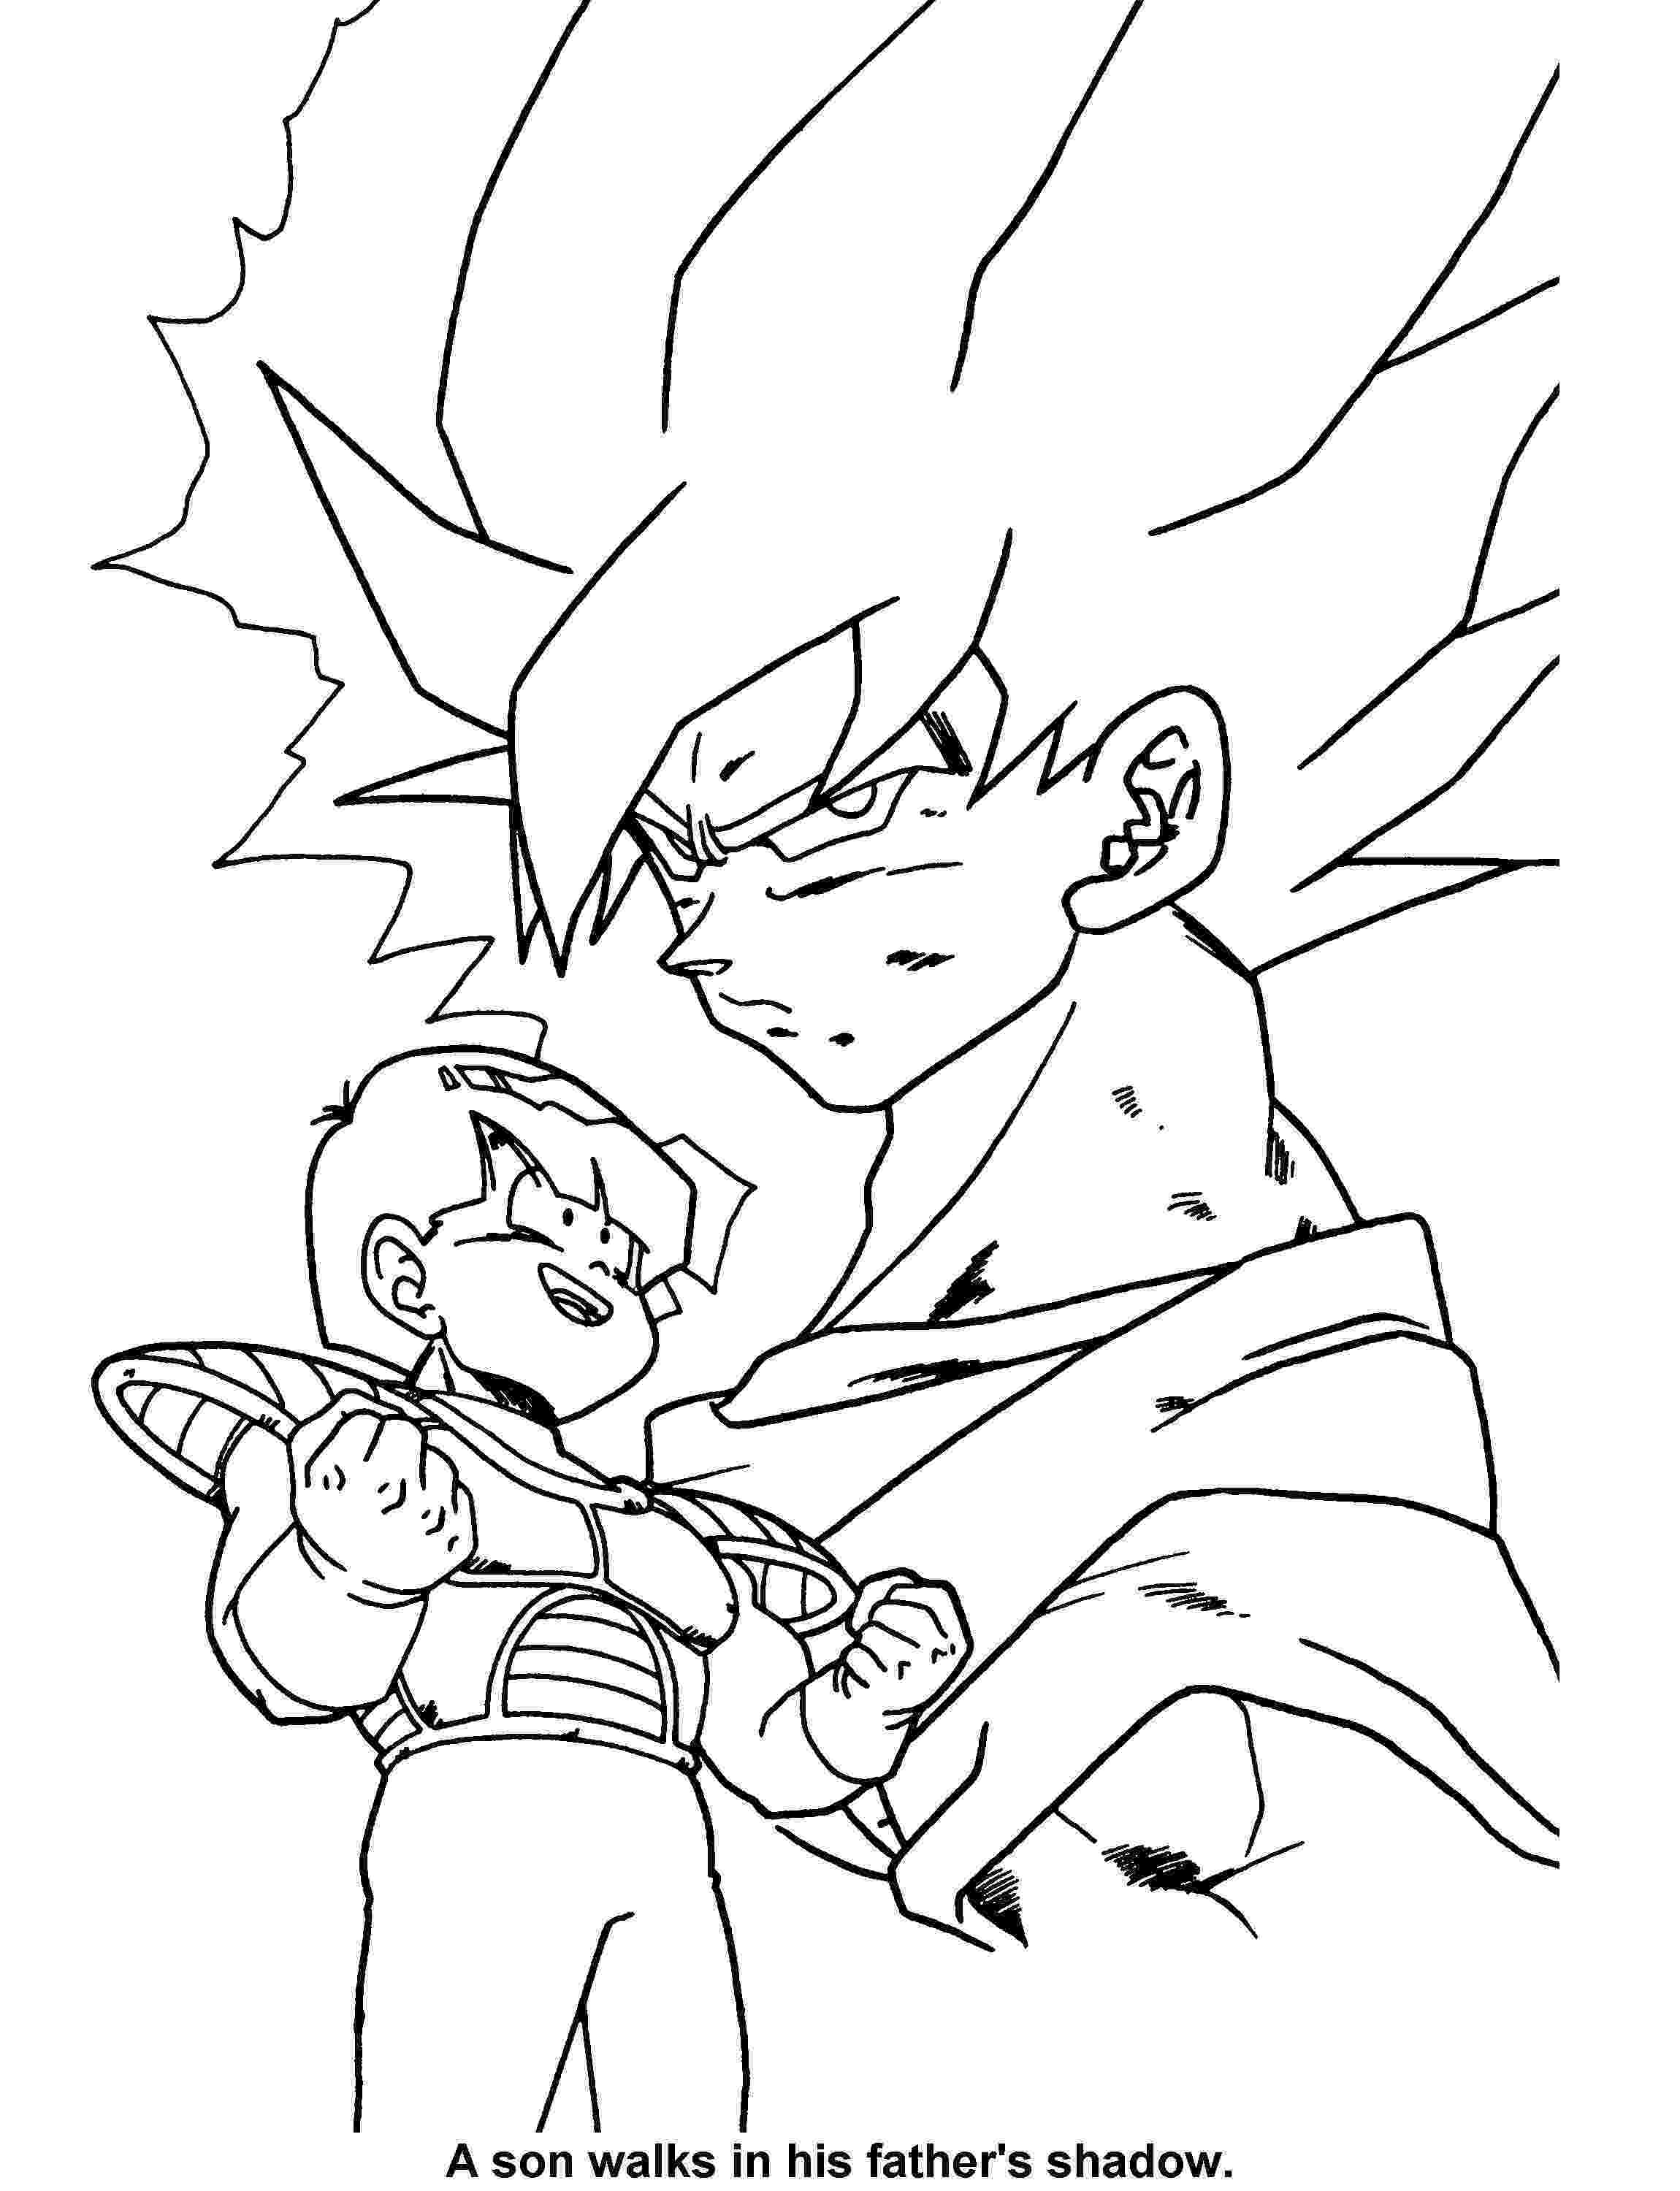 dragon ball coloring games 48 best movietvvideo game coloring pages images on games coloring dragon ball